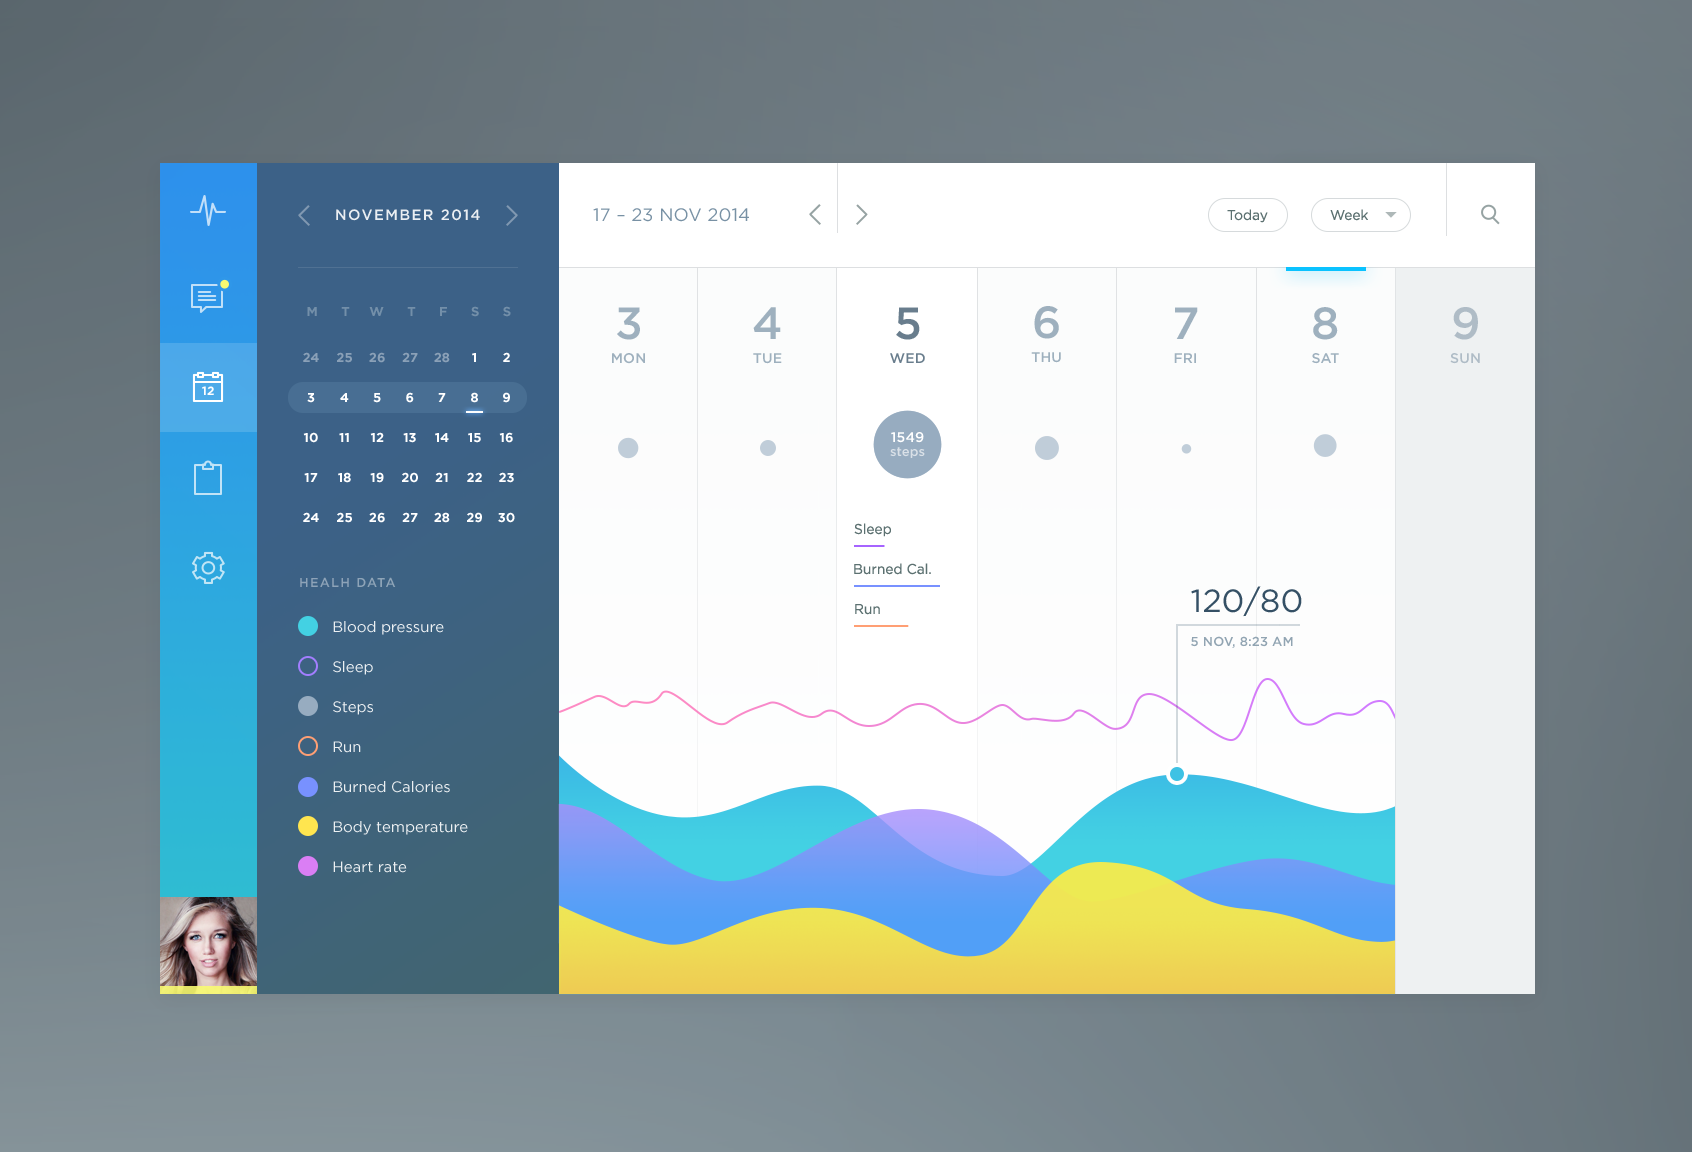 A very cool calendar view. Good for showing overall relationship of different…